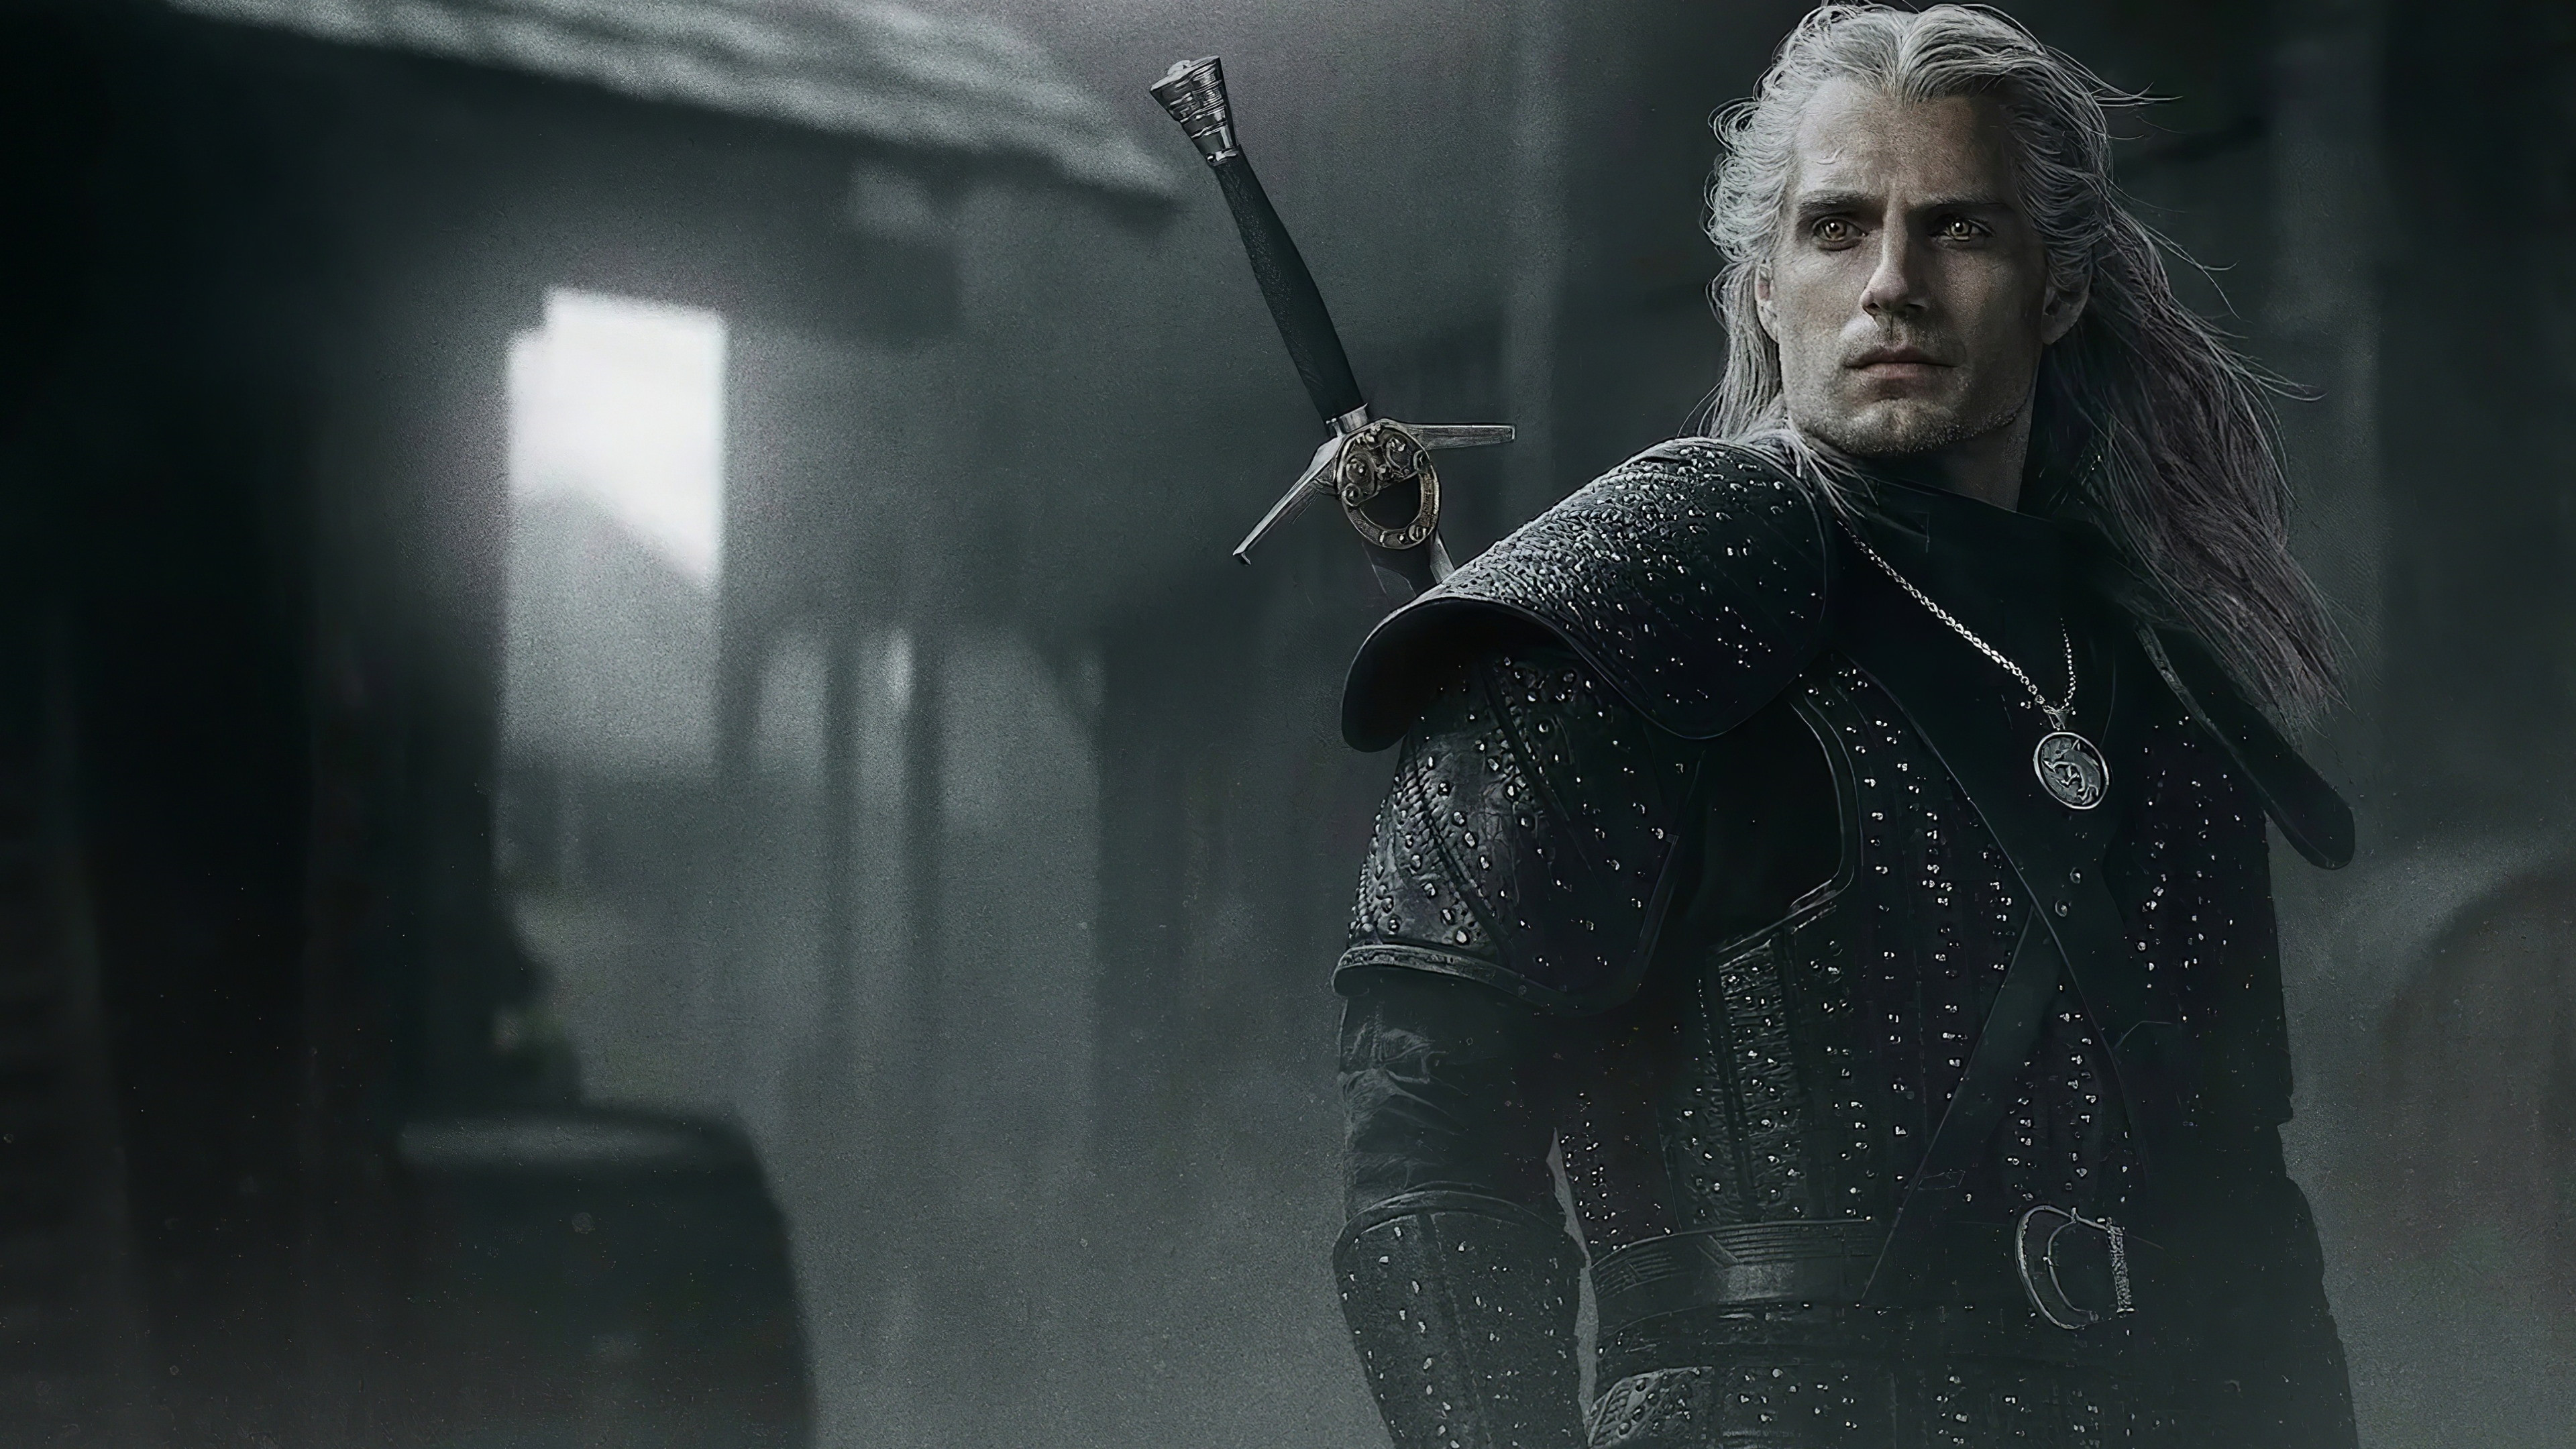 Henry Cavli in The Witcher wallpaper 3840x2160